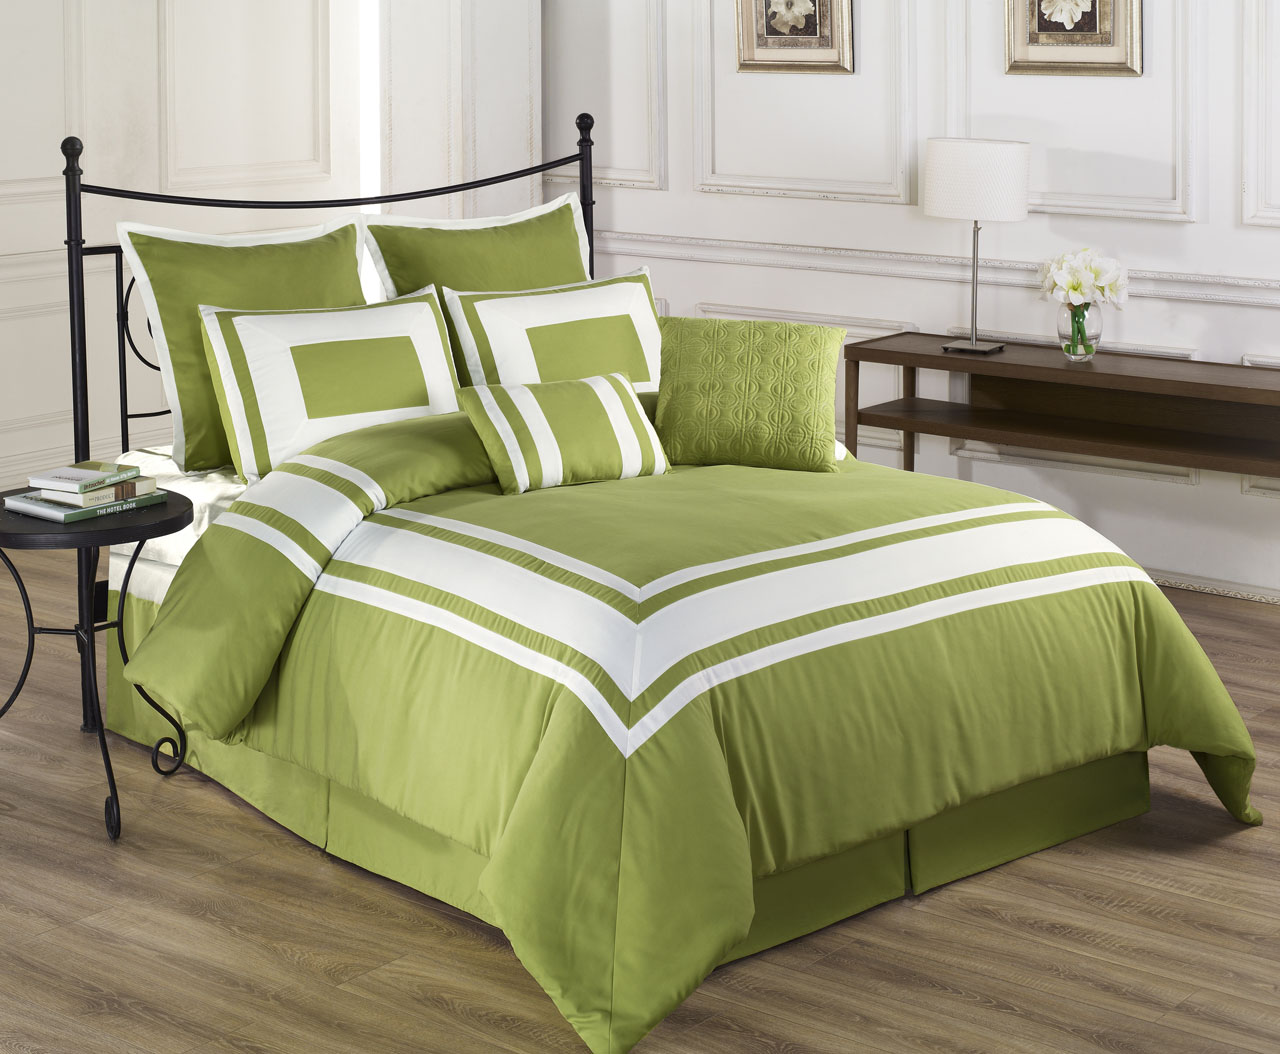 12 Piece Lux Dcor Pistachio Green Bed In A Bag Set